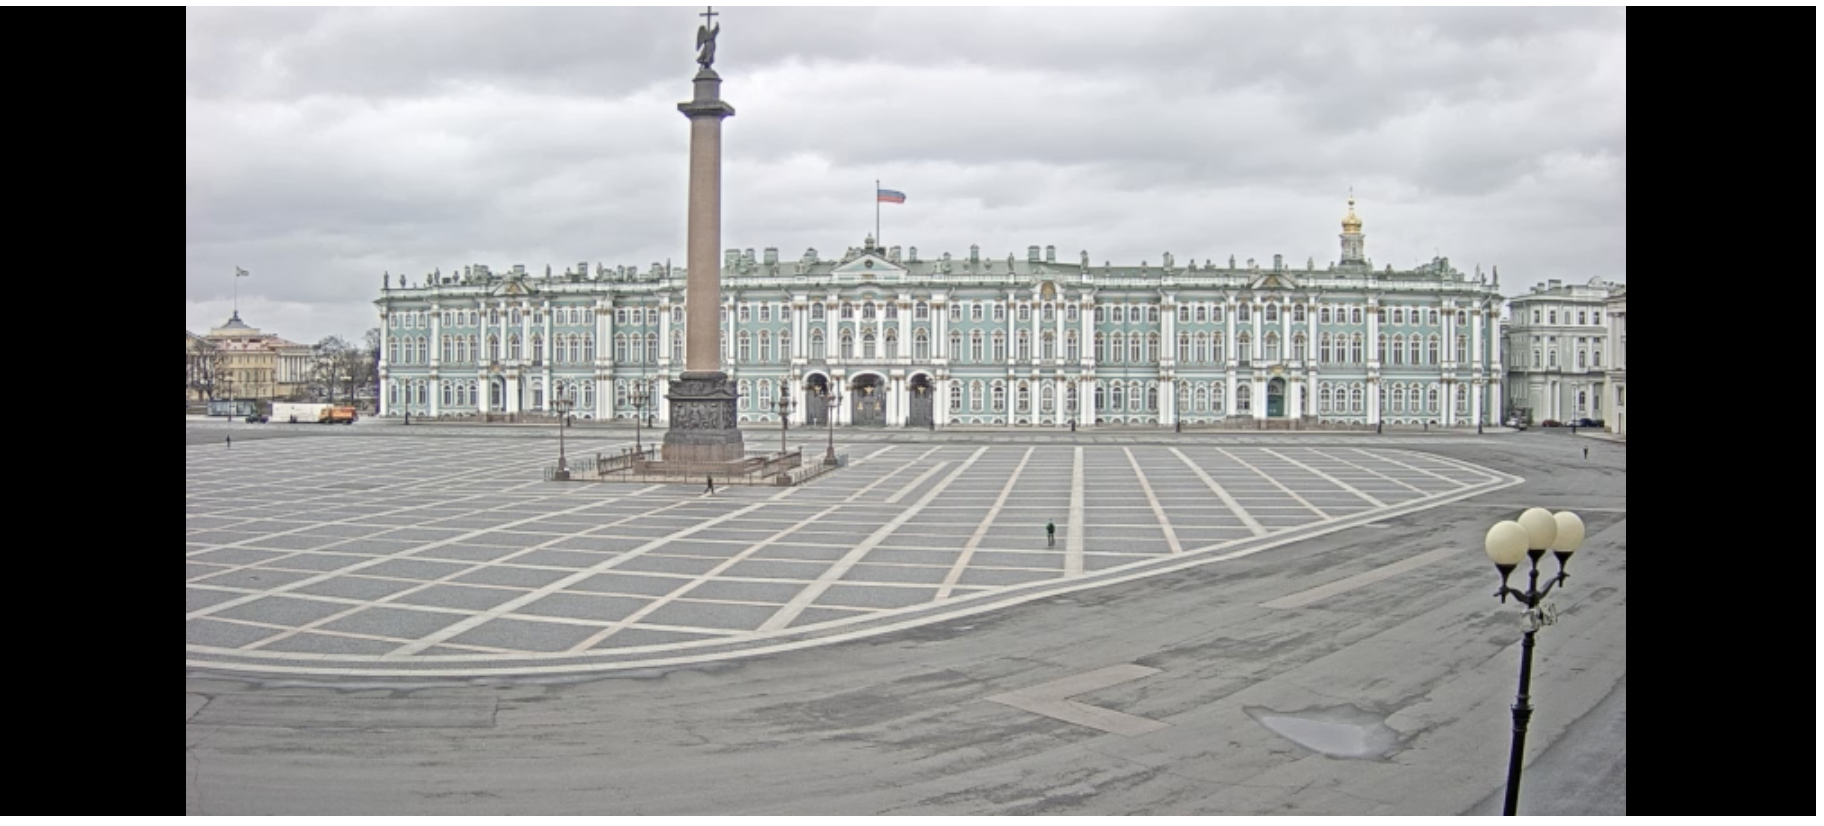 St. Petersburg webcam